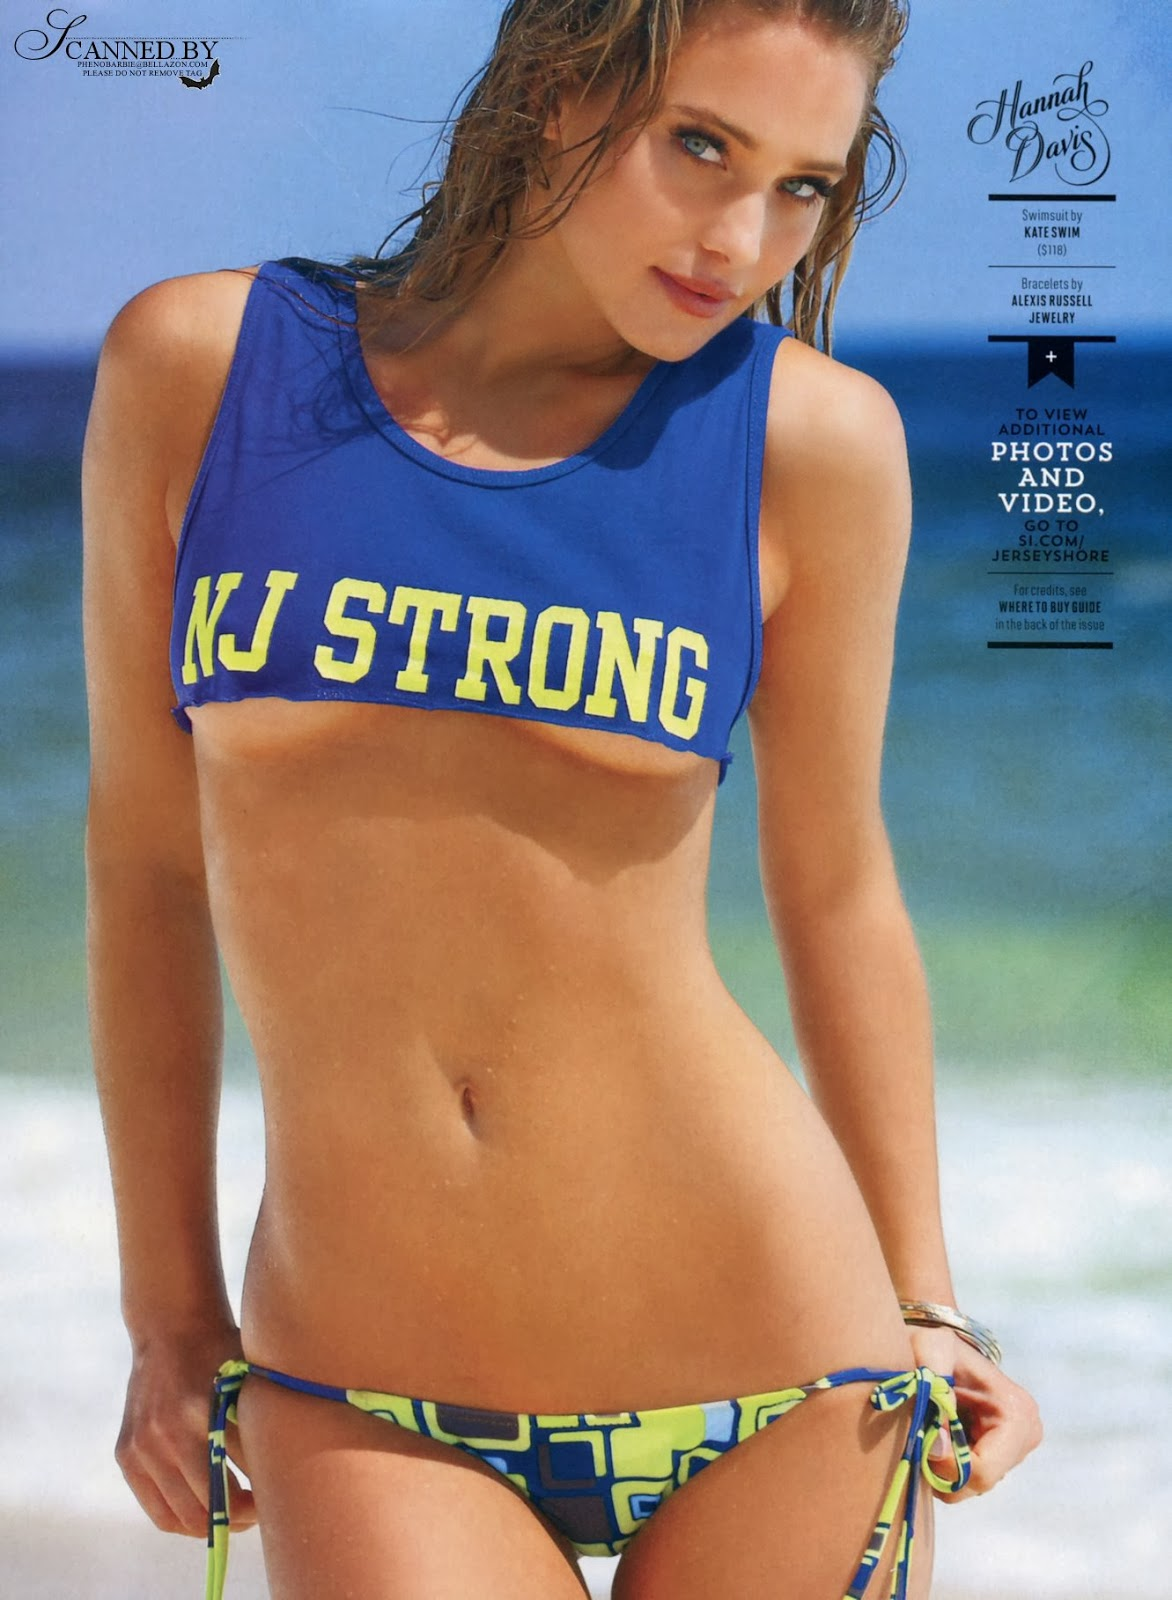 Gigi Hadid, Sara Sampaio, Hannah Davis HQ Pictures SI Swimsuit US Magazine Photoshoot Winter 2014